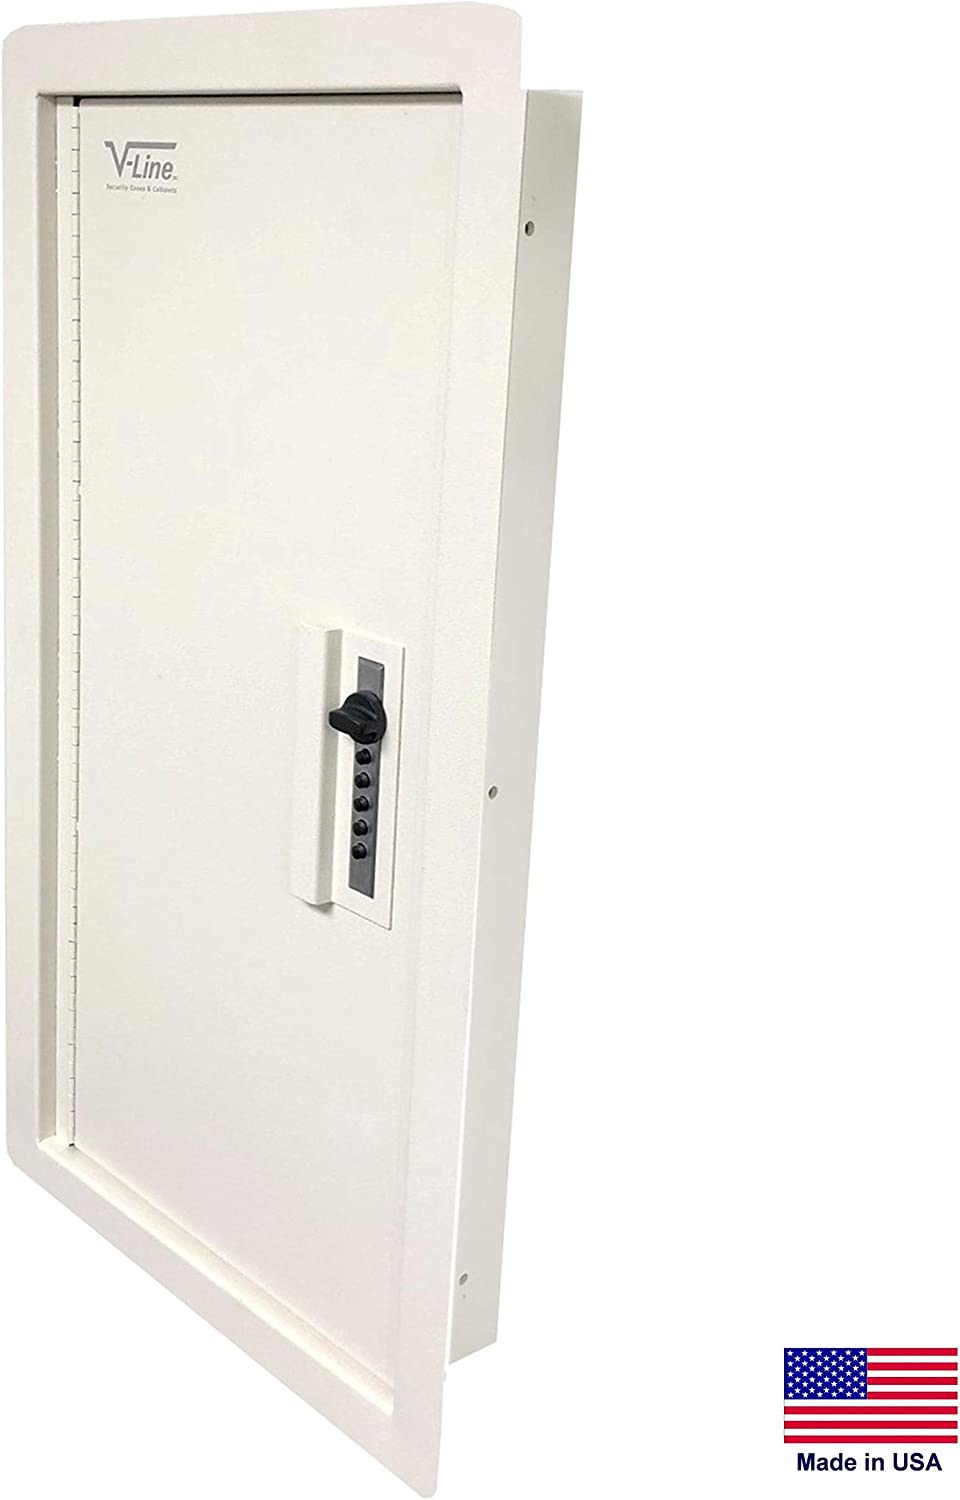 "V-Line Quick Vault XL Locking Storage for Guns & Valuables, Ivory Durable Textured Powder Coat, 14"" W x 28"" H x 4"" D"